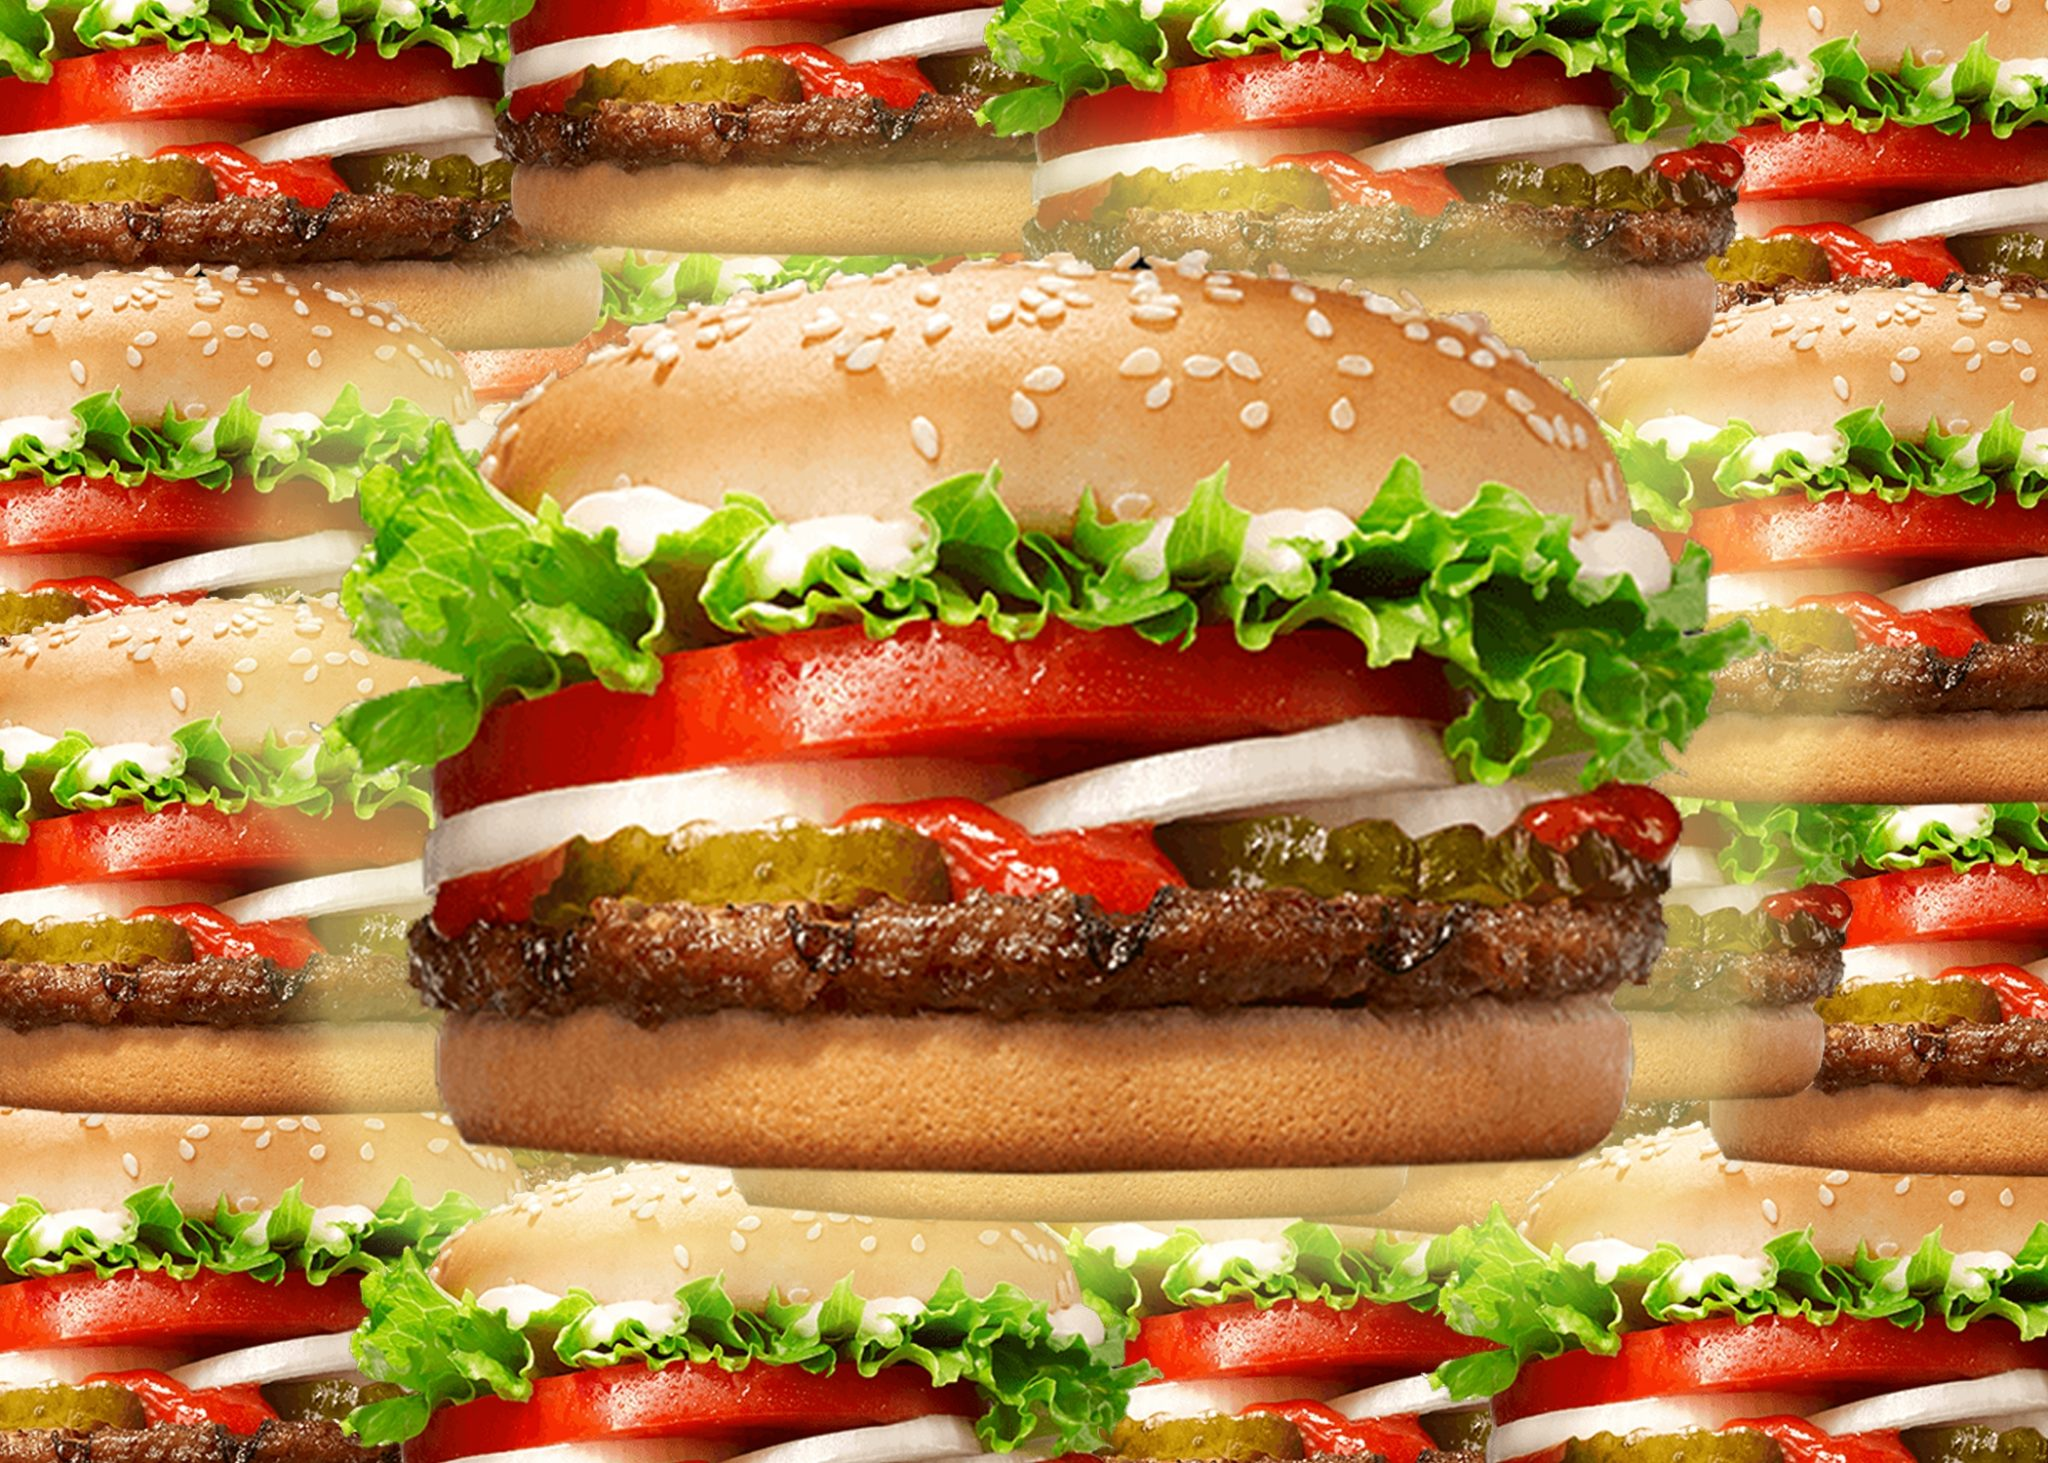 Perfection in a tiny package... The Whopper Junior.